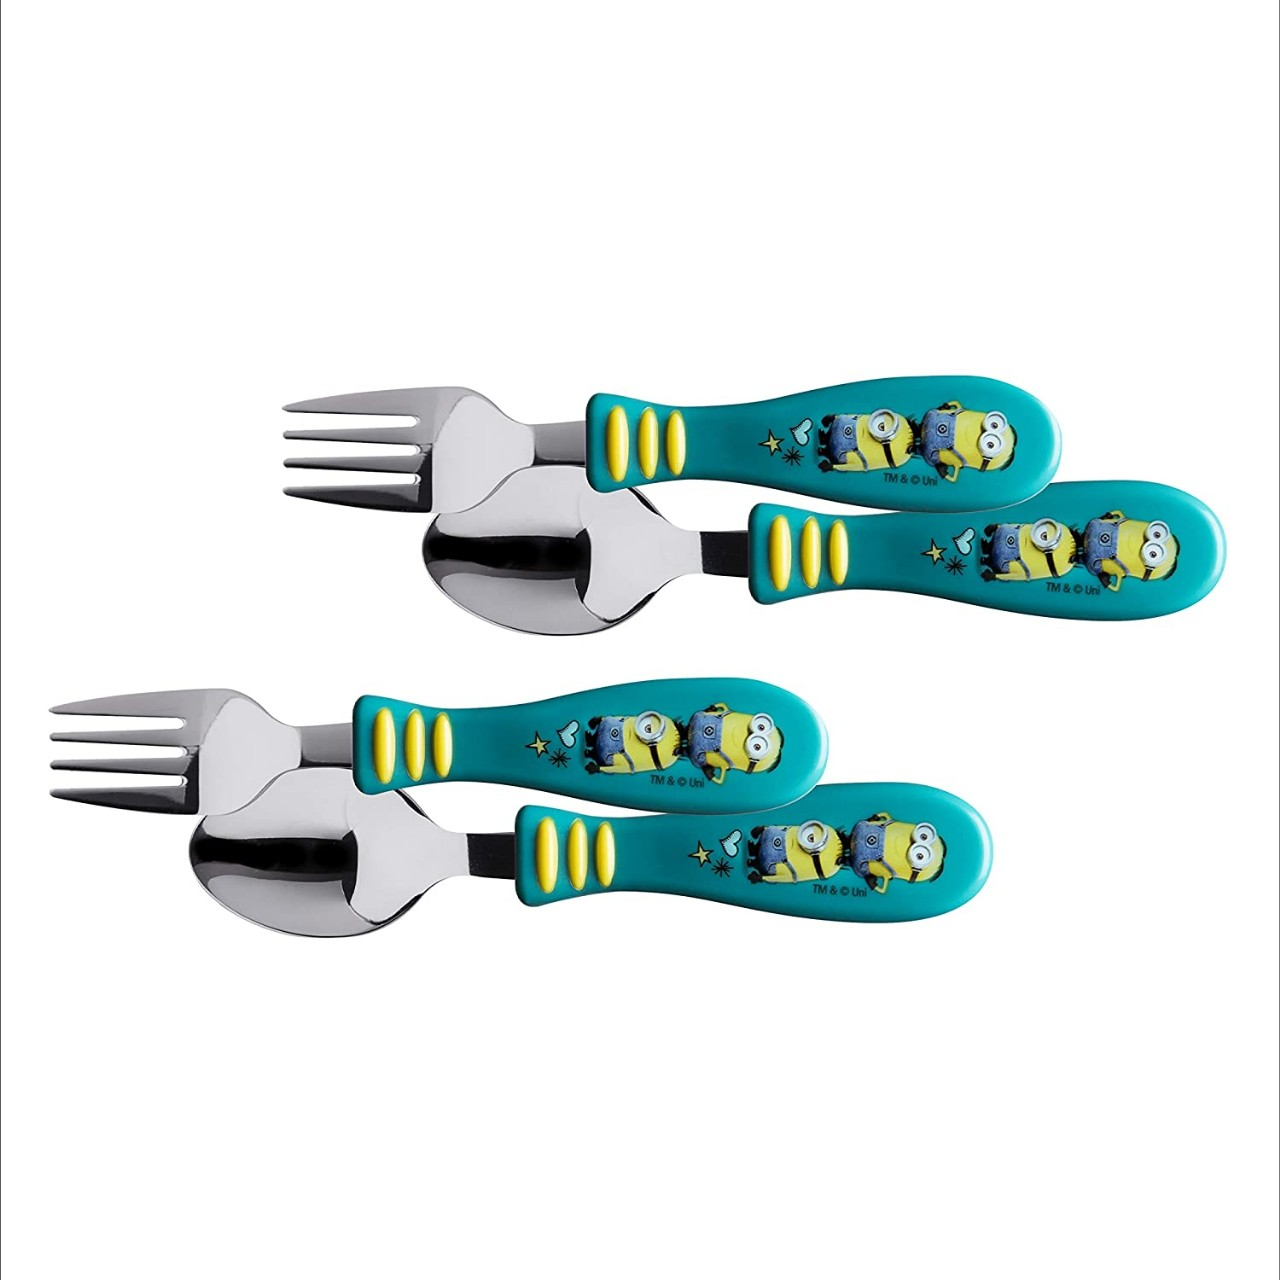 Zak Designs Despicable Me Minions - Kid Flatware Set with Fun Character Art on Both Utensils, Non